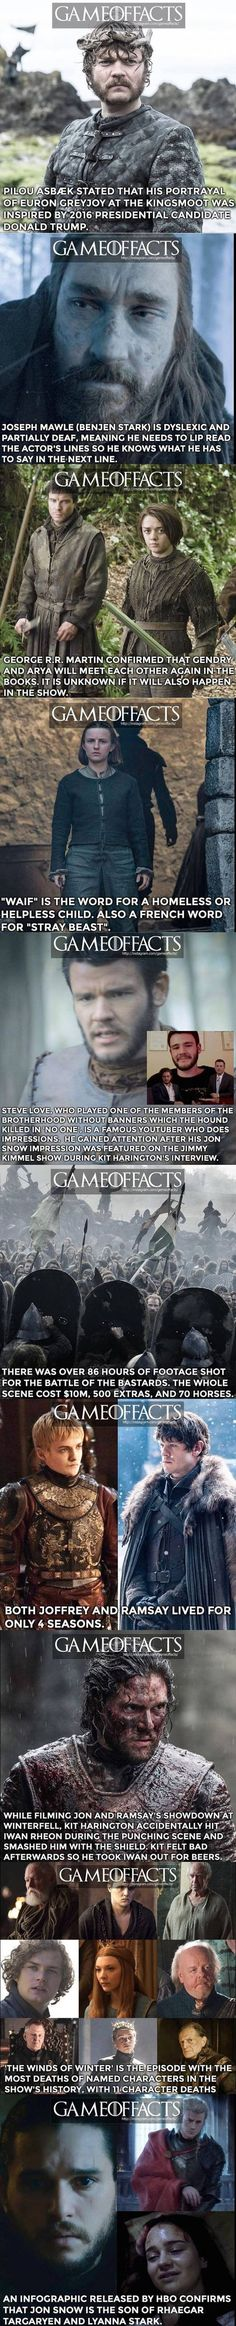 Game of thrones facts part 4